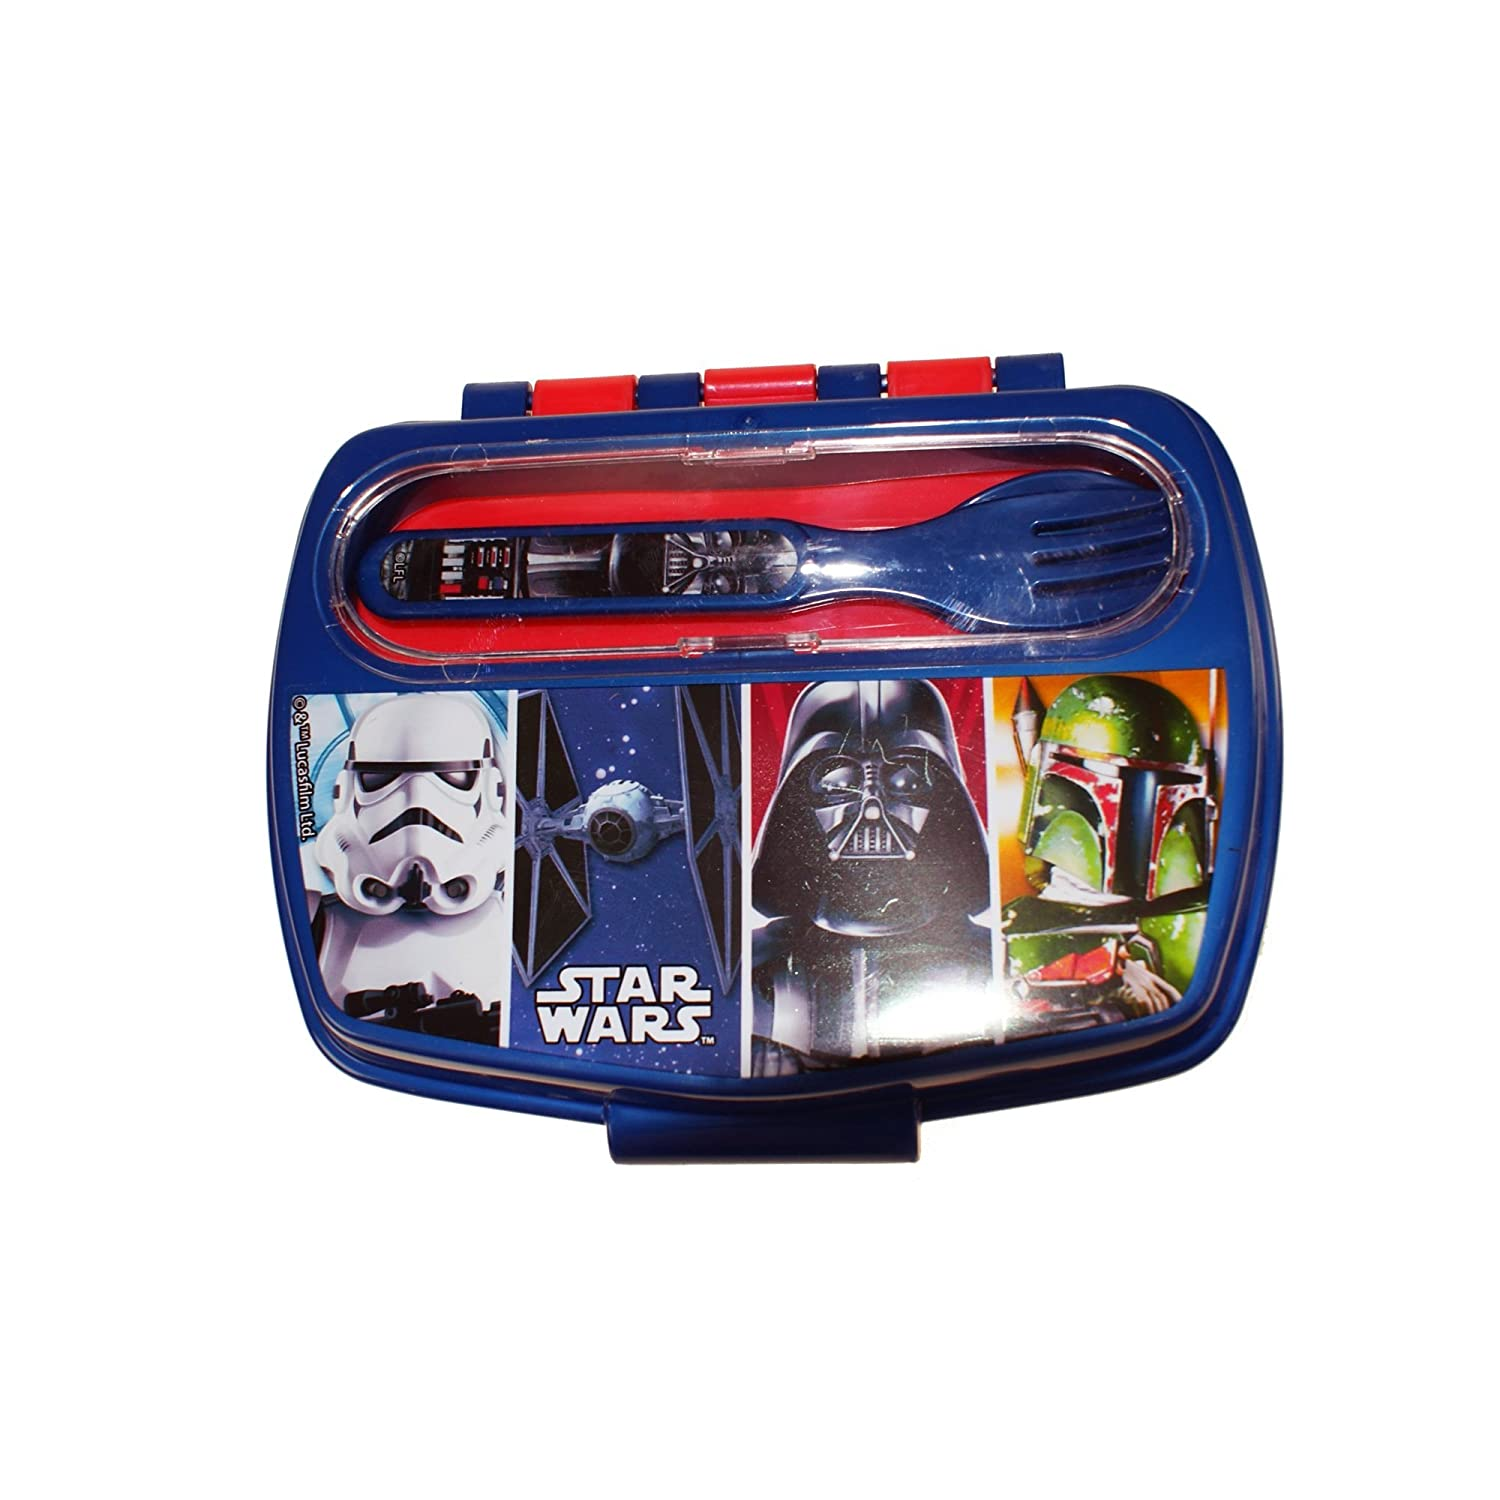 Boyz Toys ST442 Sandwich Box with Cutlery - Star Wars, Multi: Amazon.es: Hogar